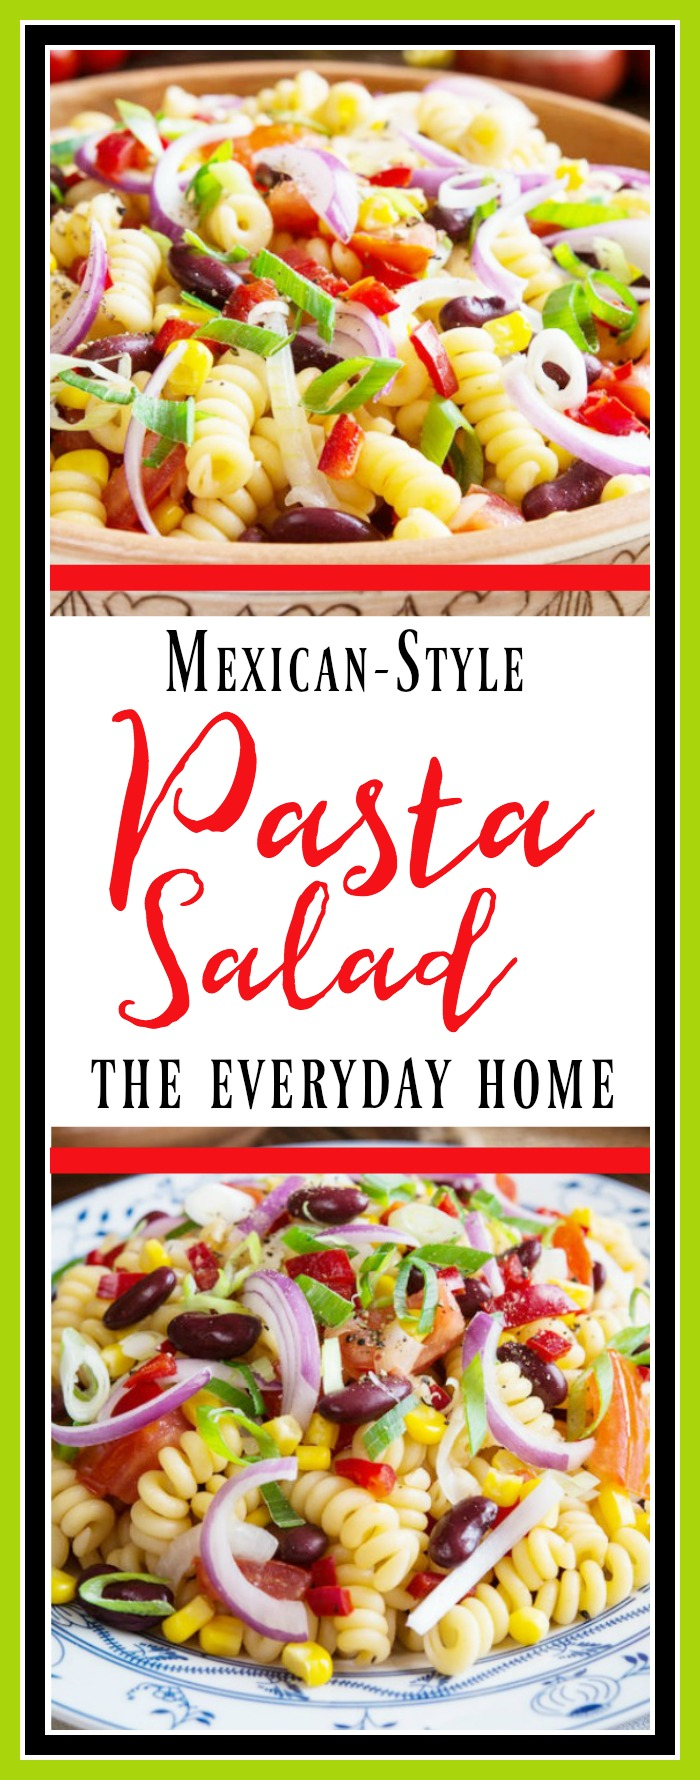 Mexican Style Pasta Salad | The Everyday Home | www.everydayhomeblog.com